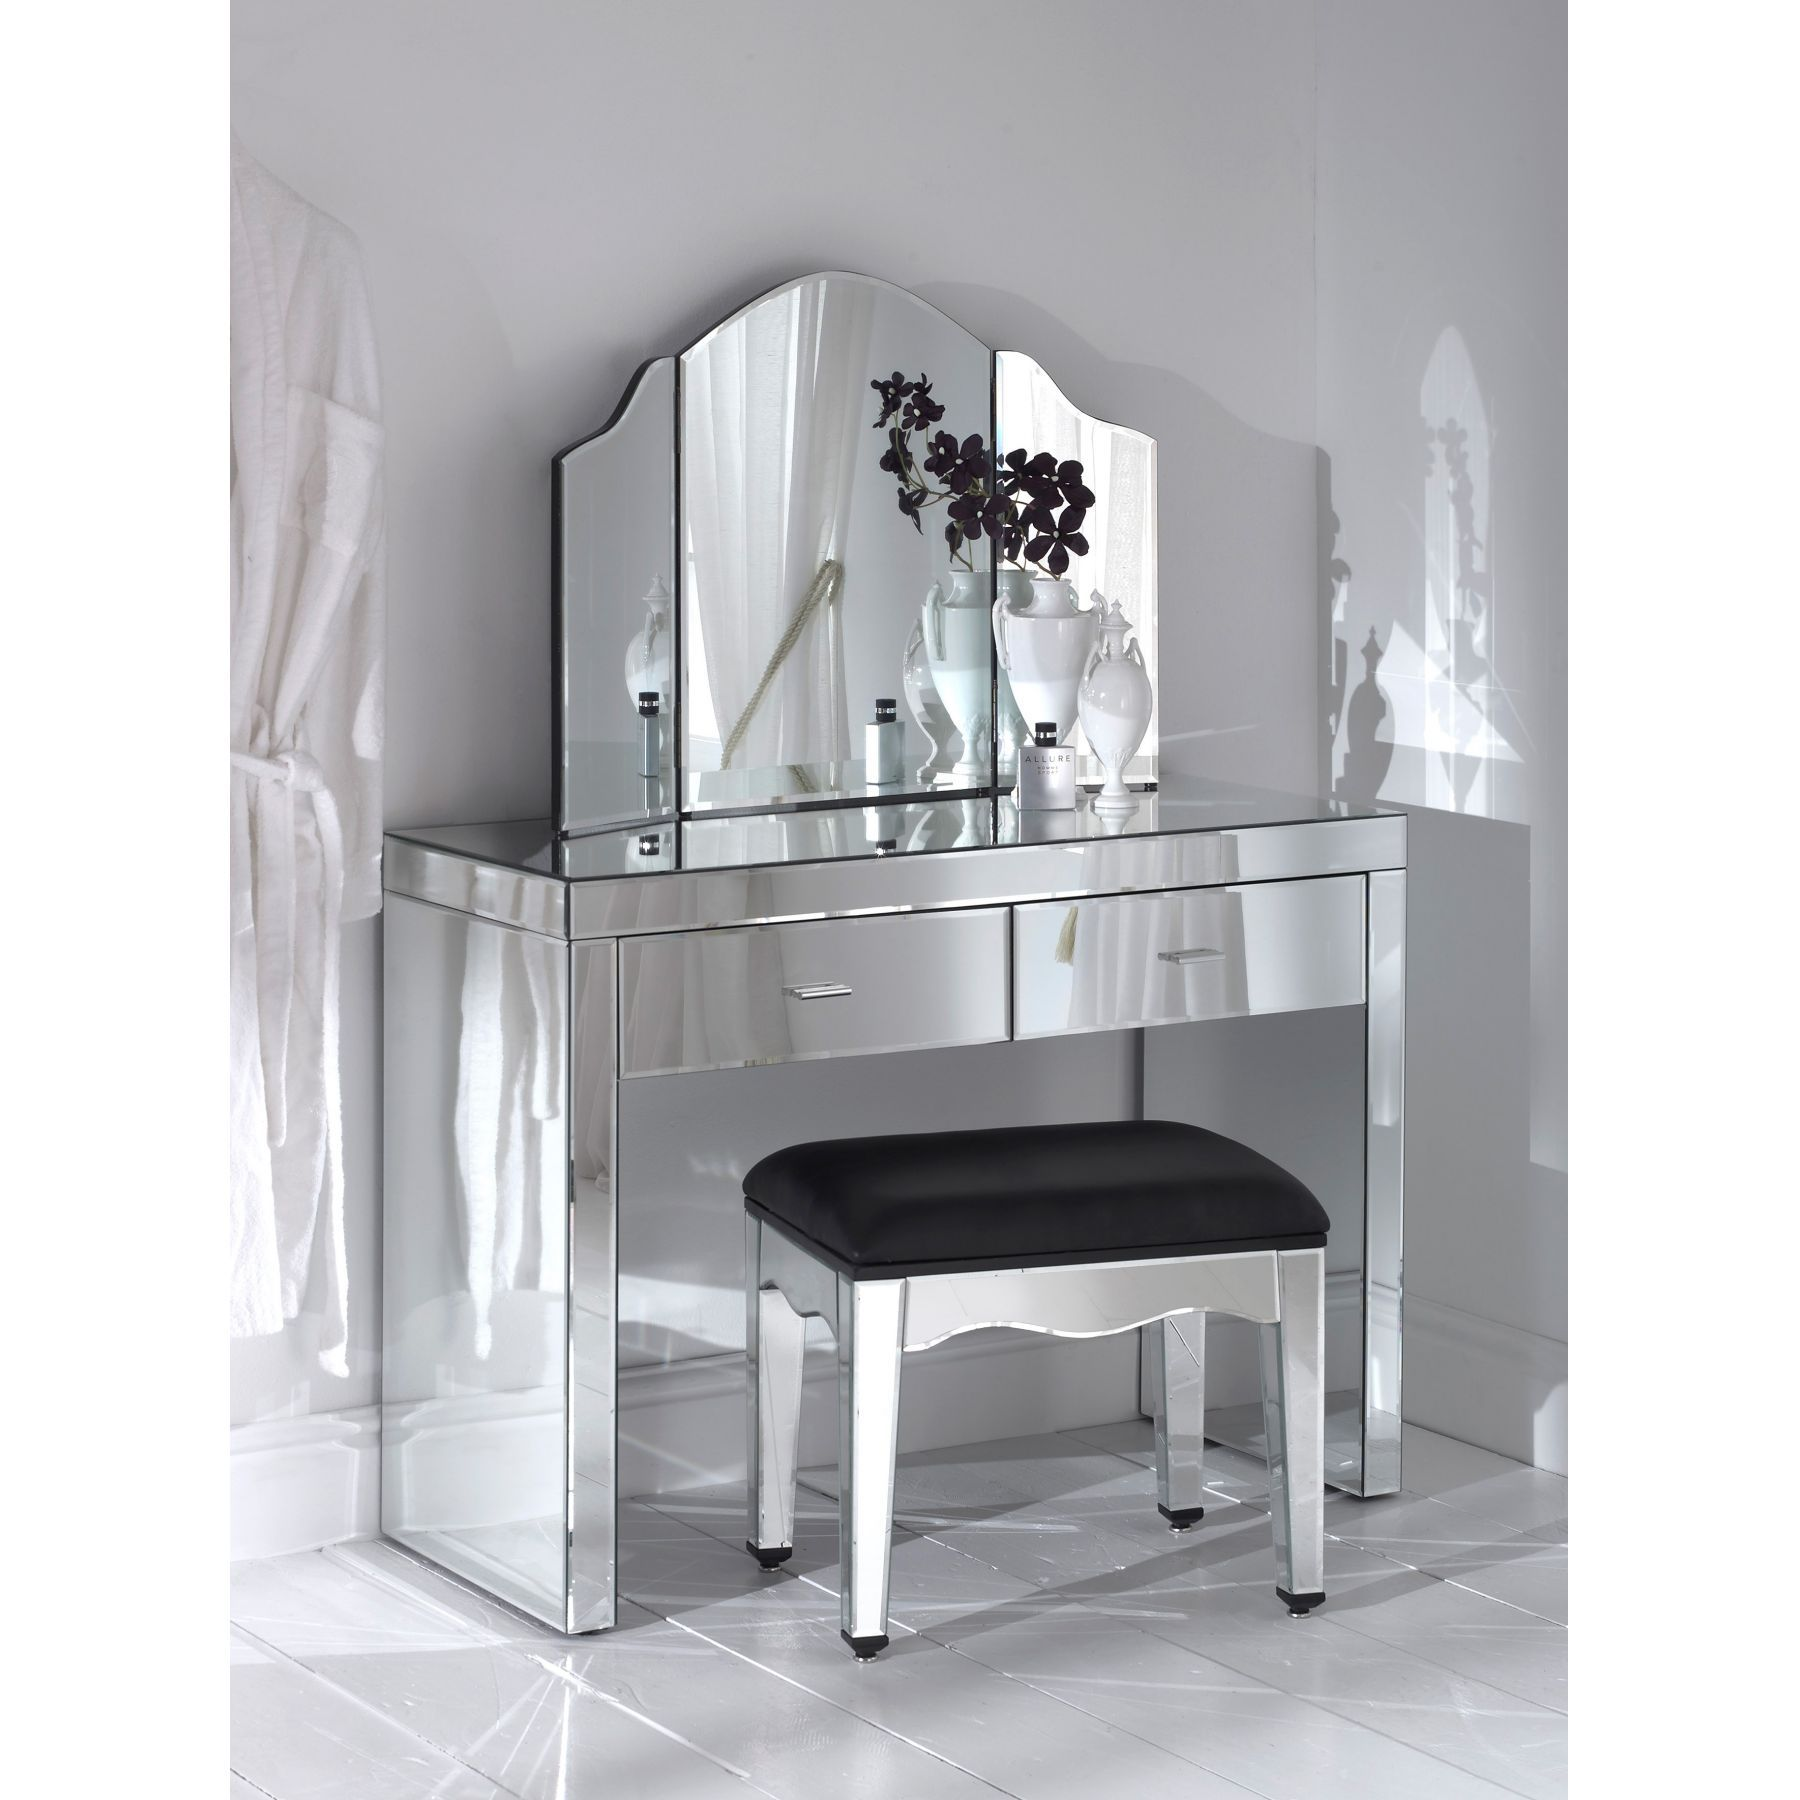 Love this mirrored vanity Love this mirrored vanity    Dream Home   Pinterest   Dressing  . Mirrored Makeup Vanity Set. Home Design Ideas